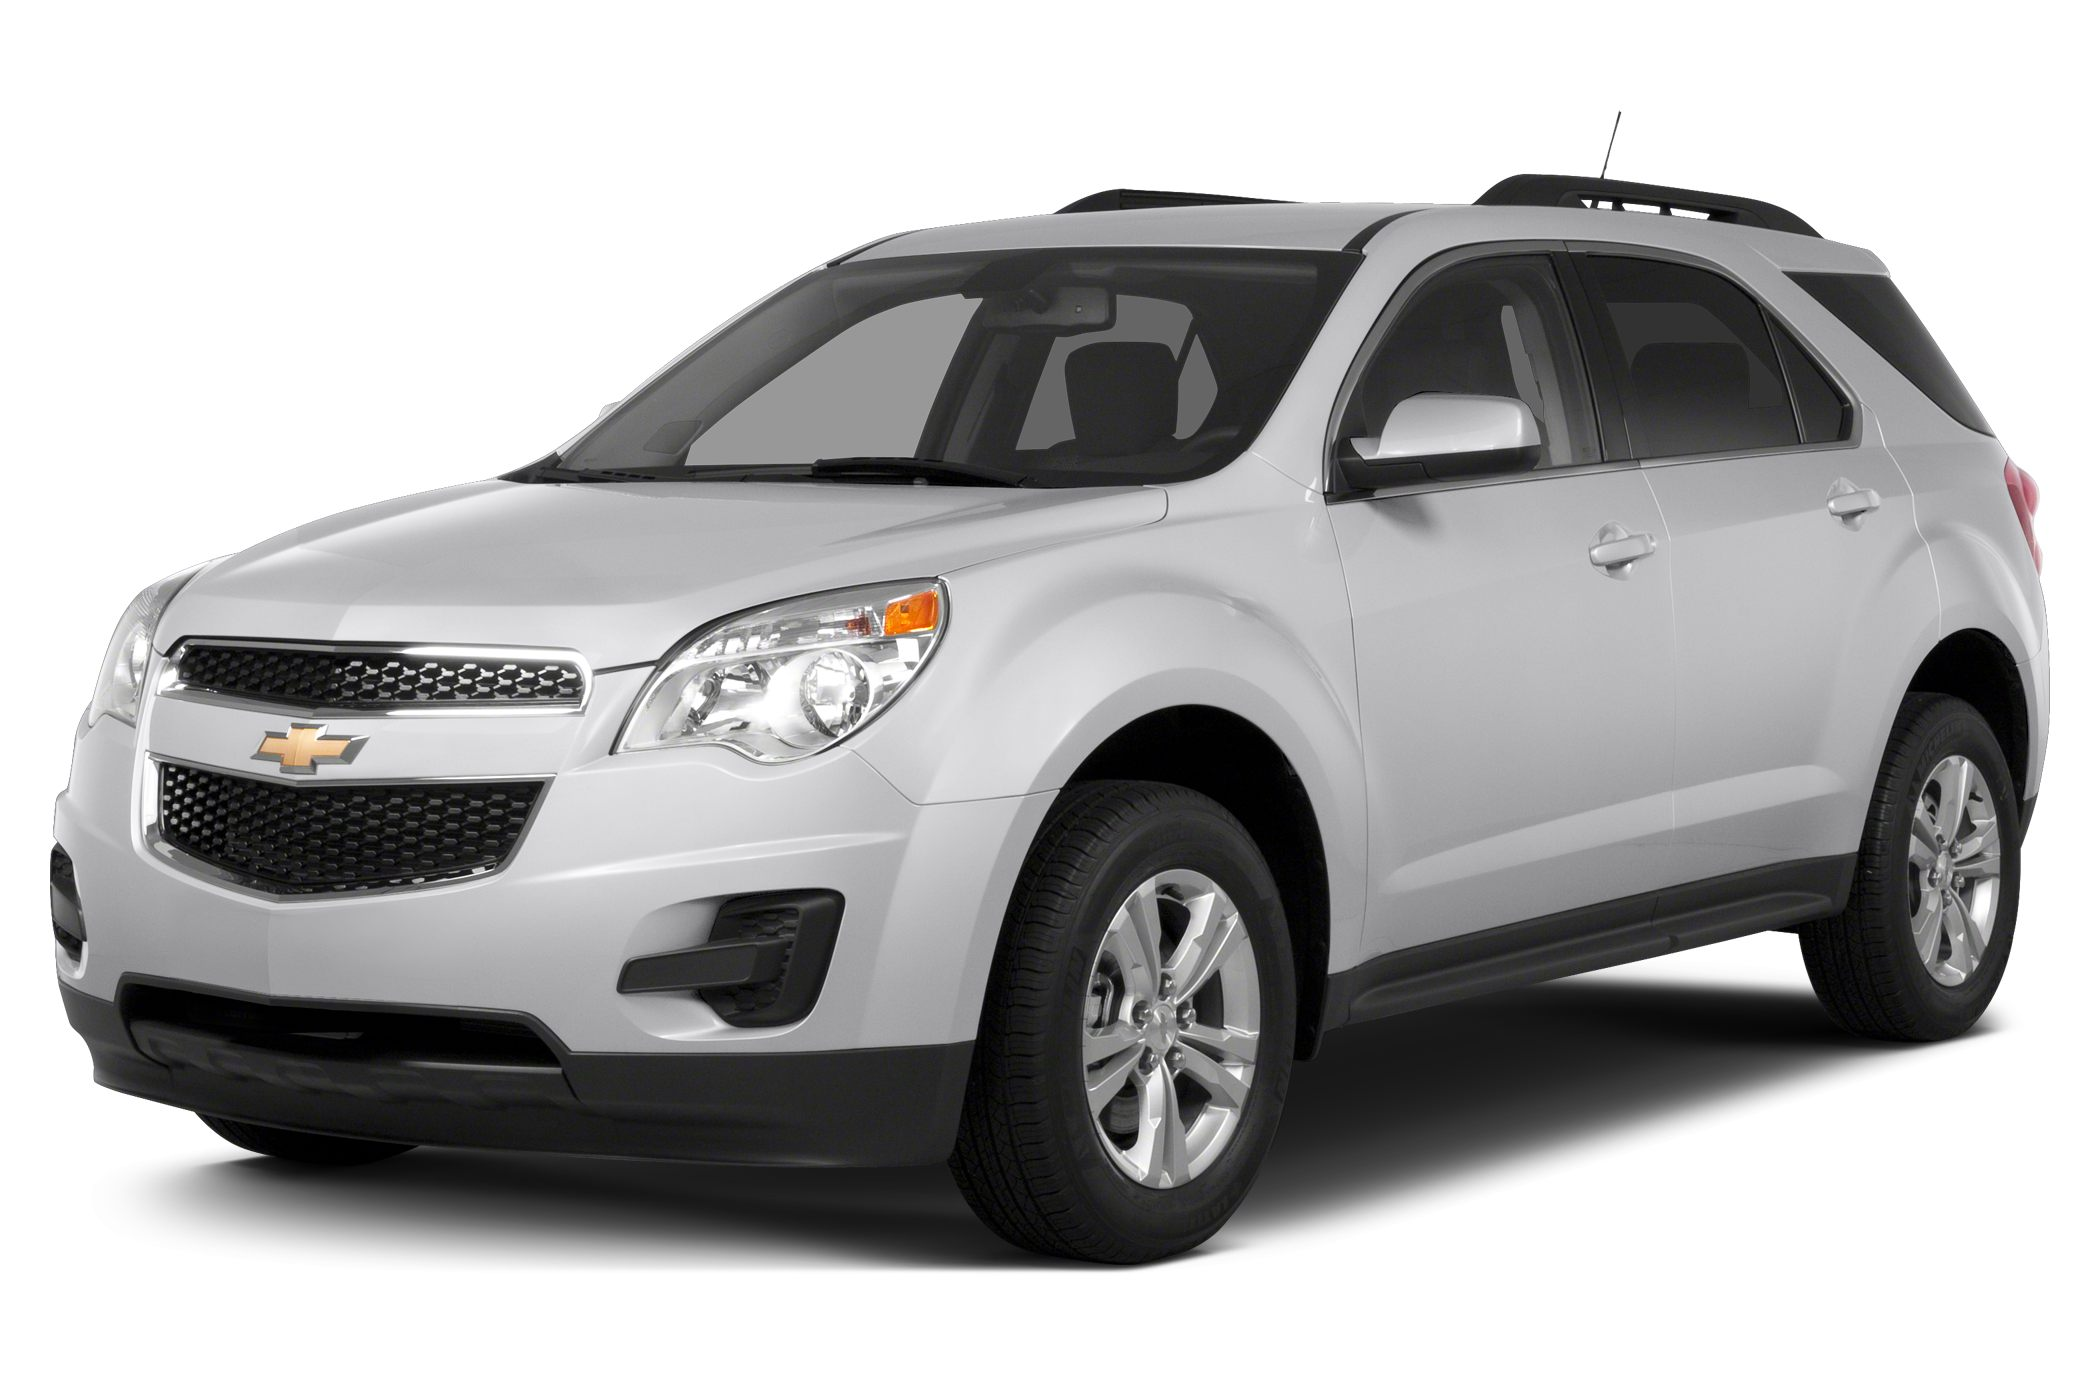 2015 Chevrolet Equinox 2LT SUV for sale in Cheyenne for $34,515 with 0 miles